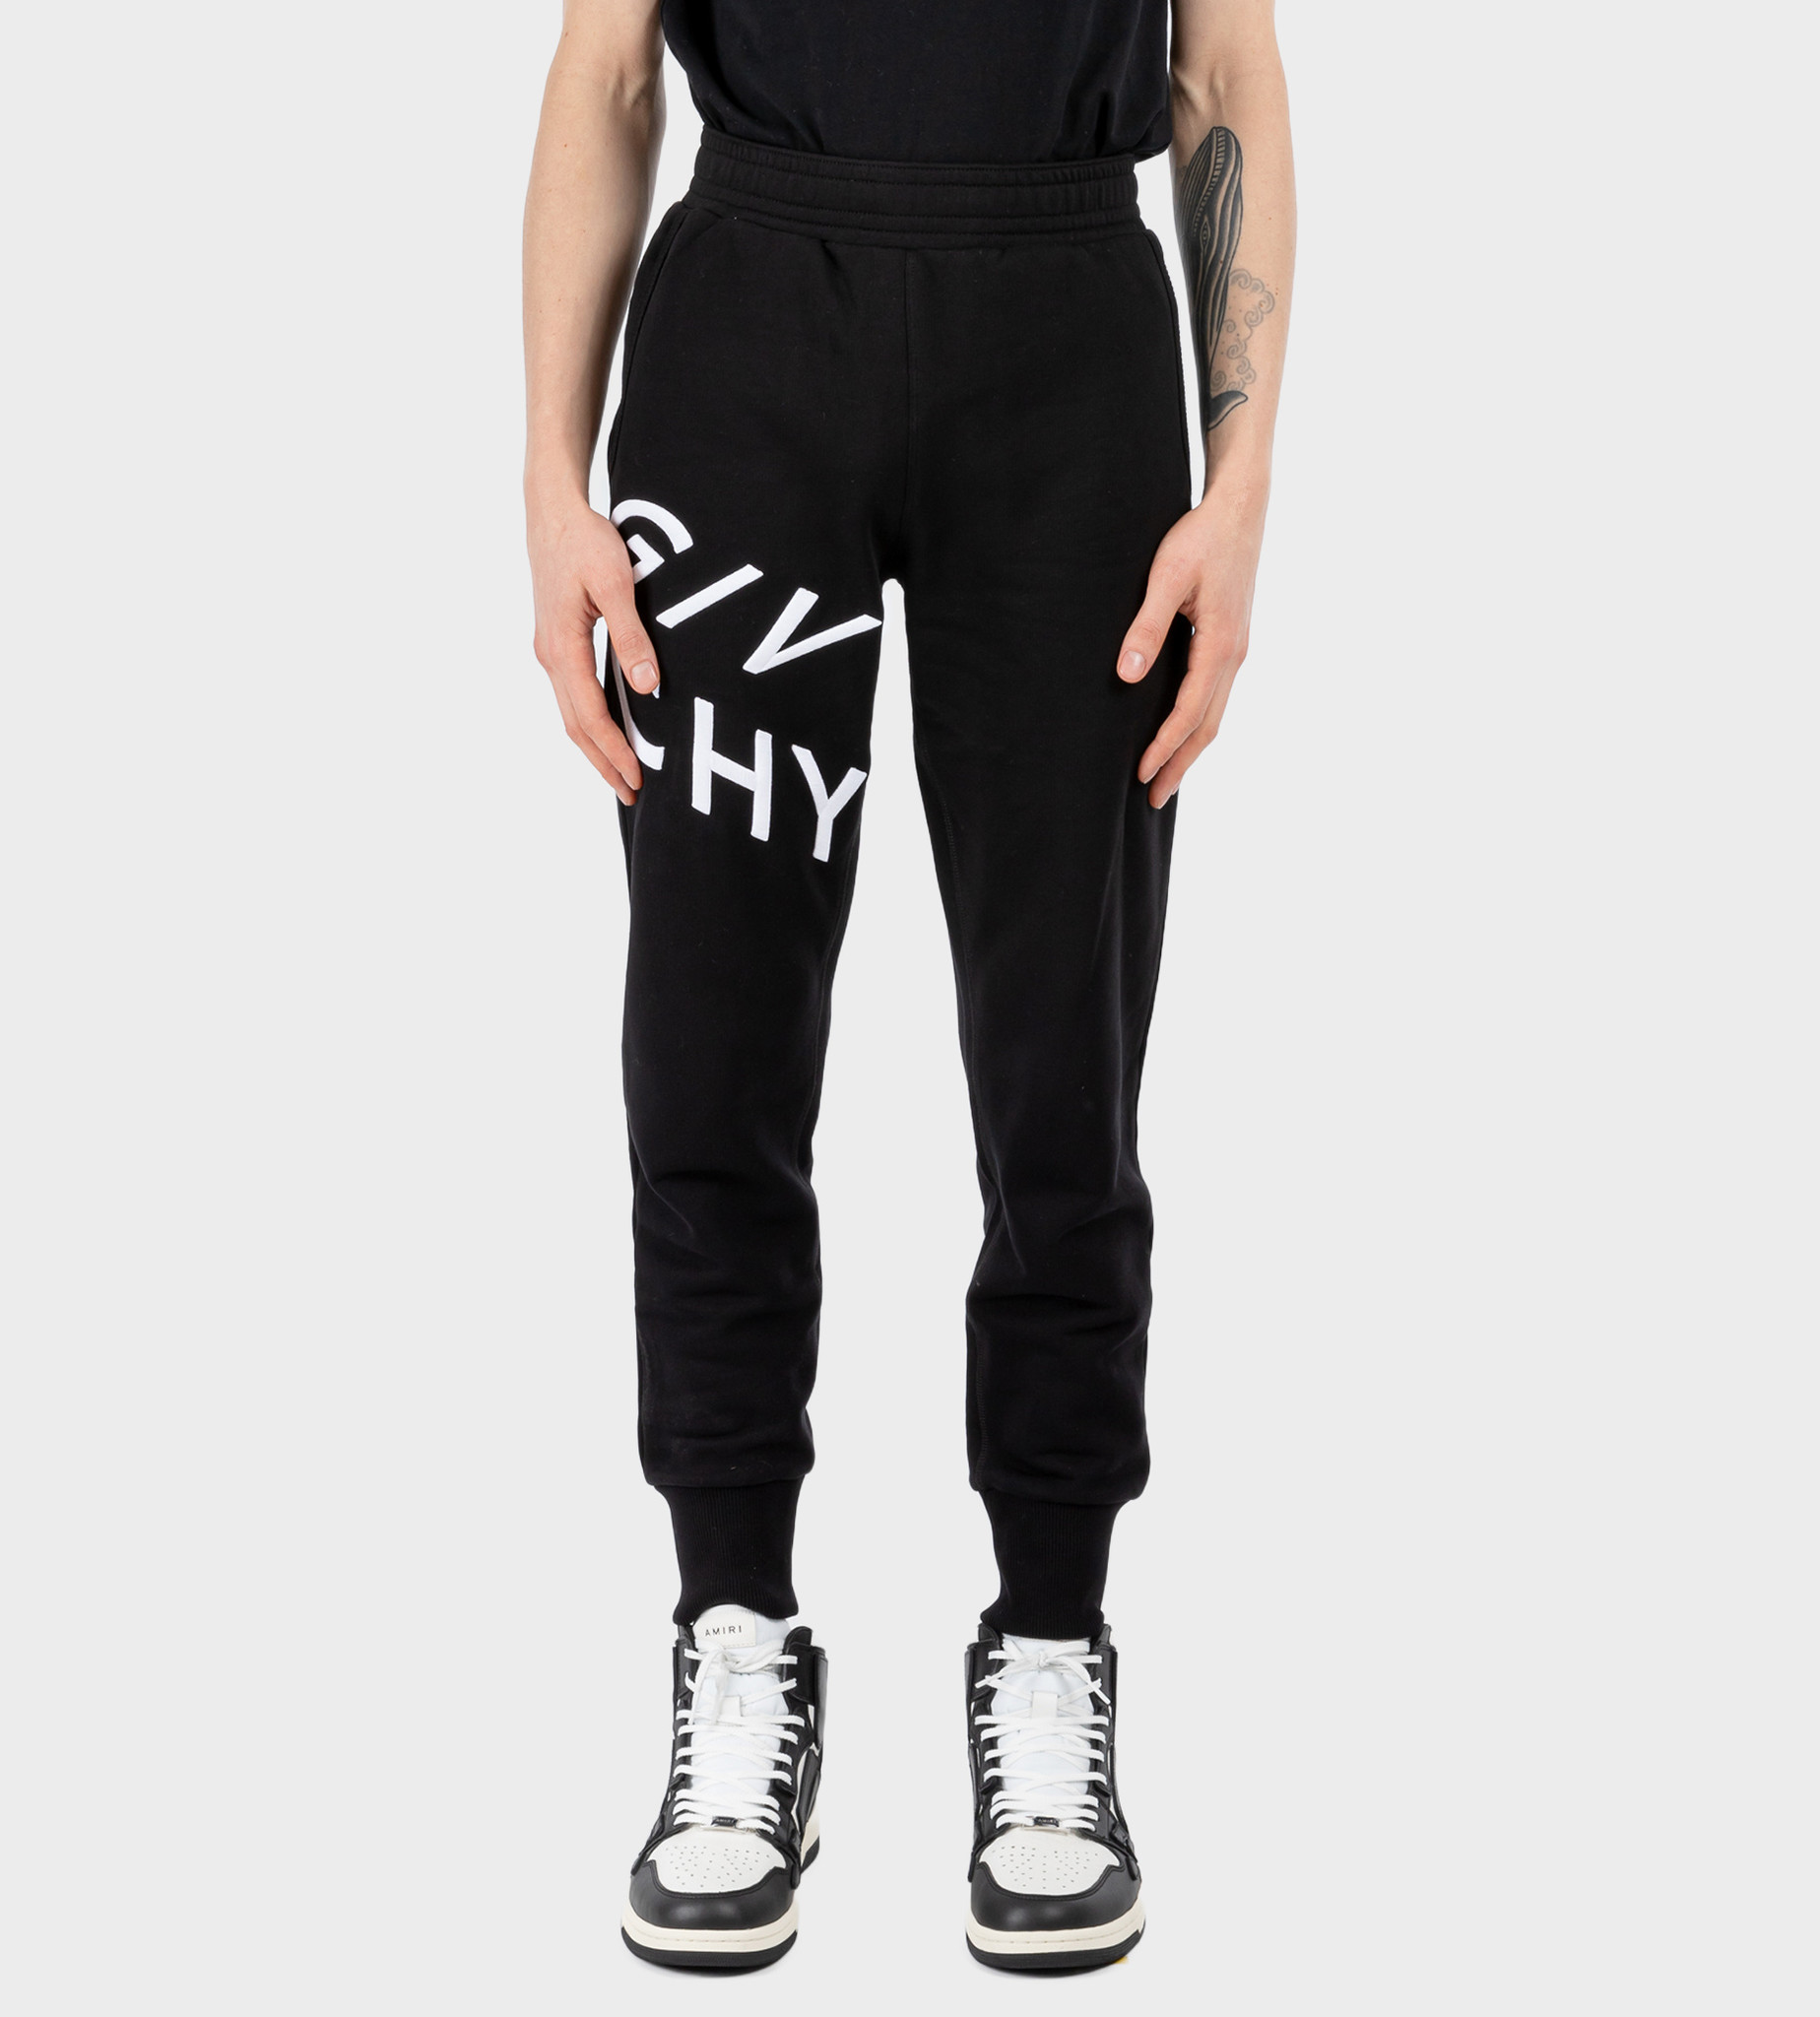 GIVENCHY Embroidered Logo Sweatpants Black